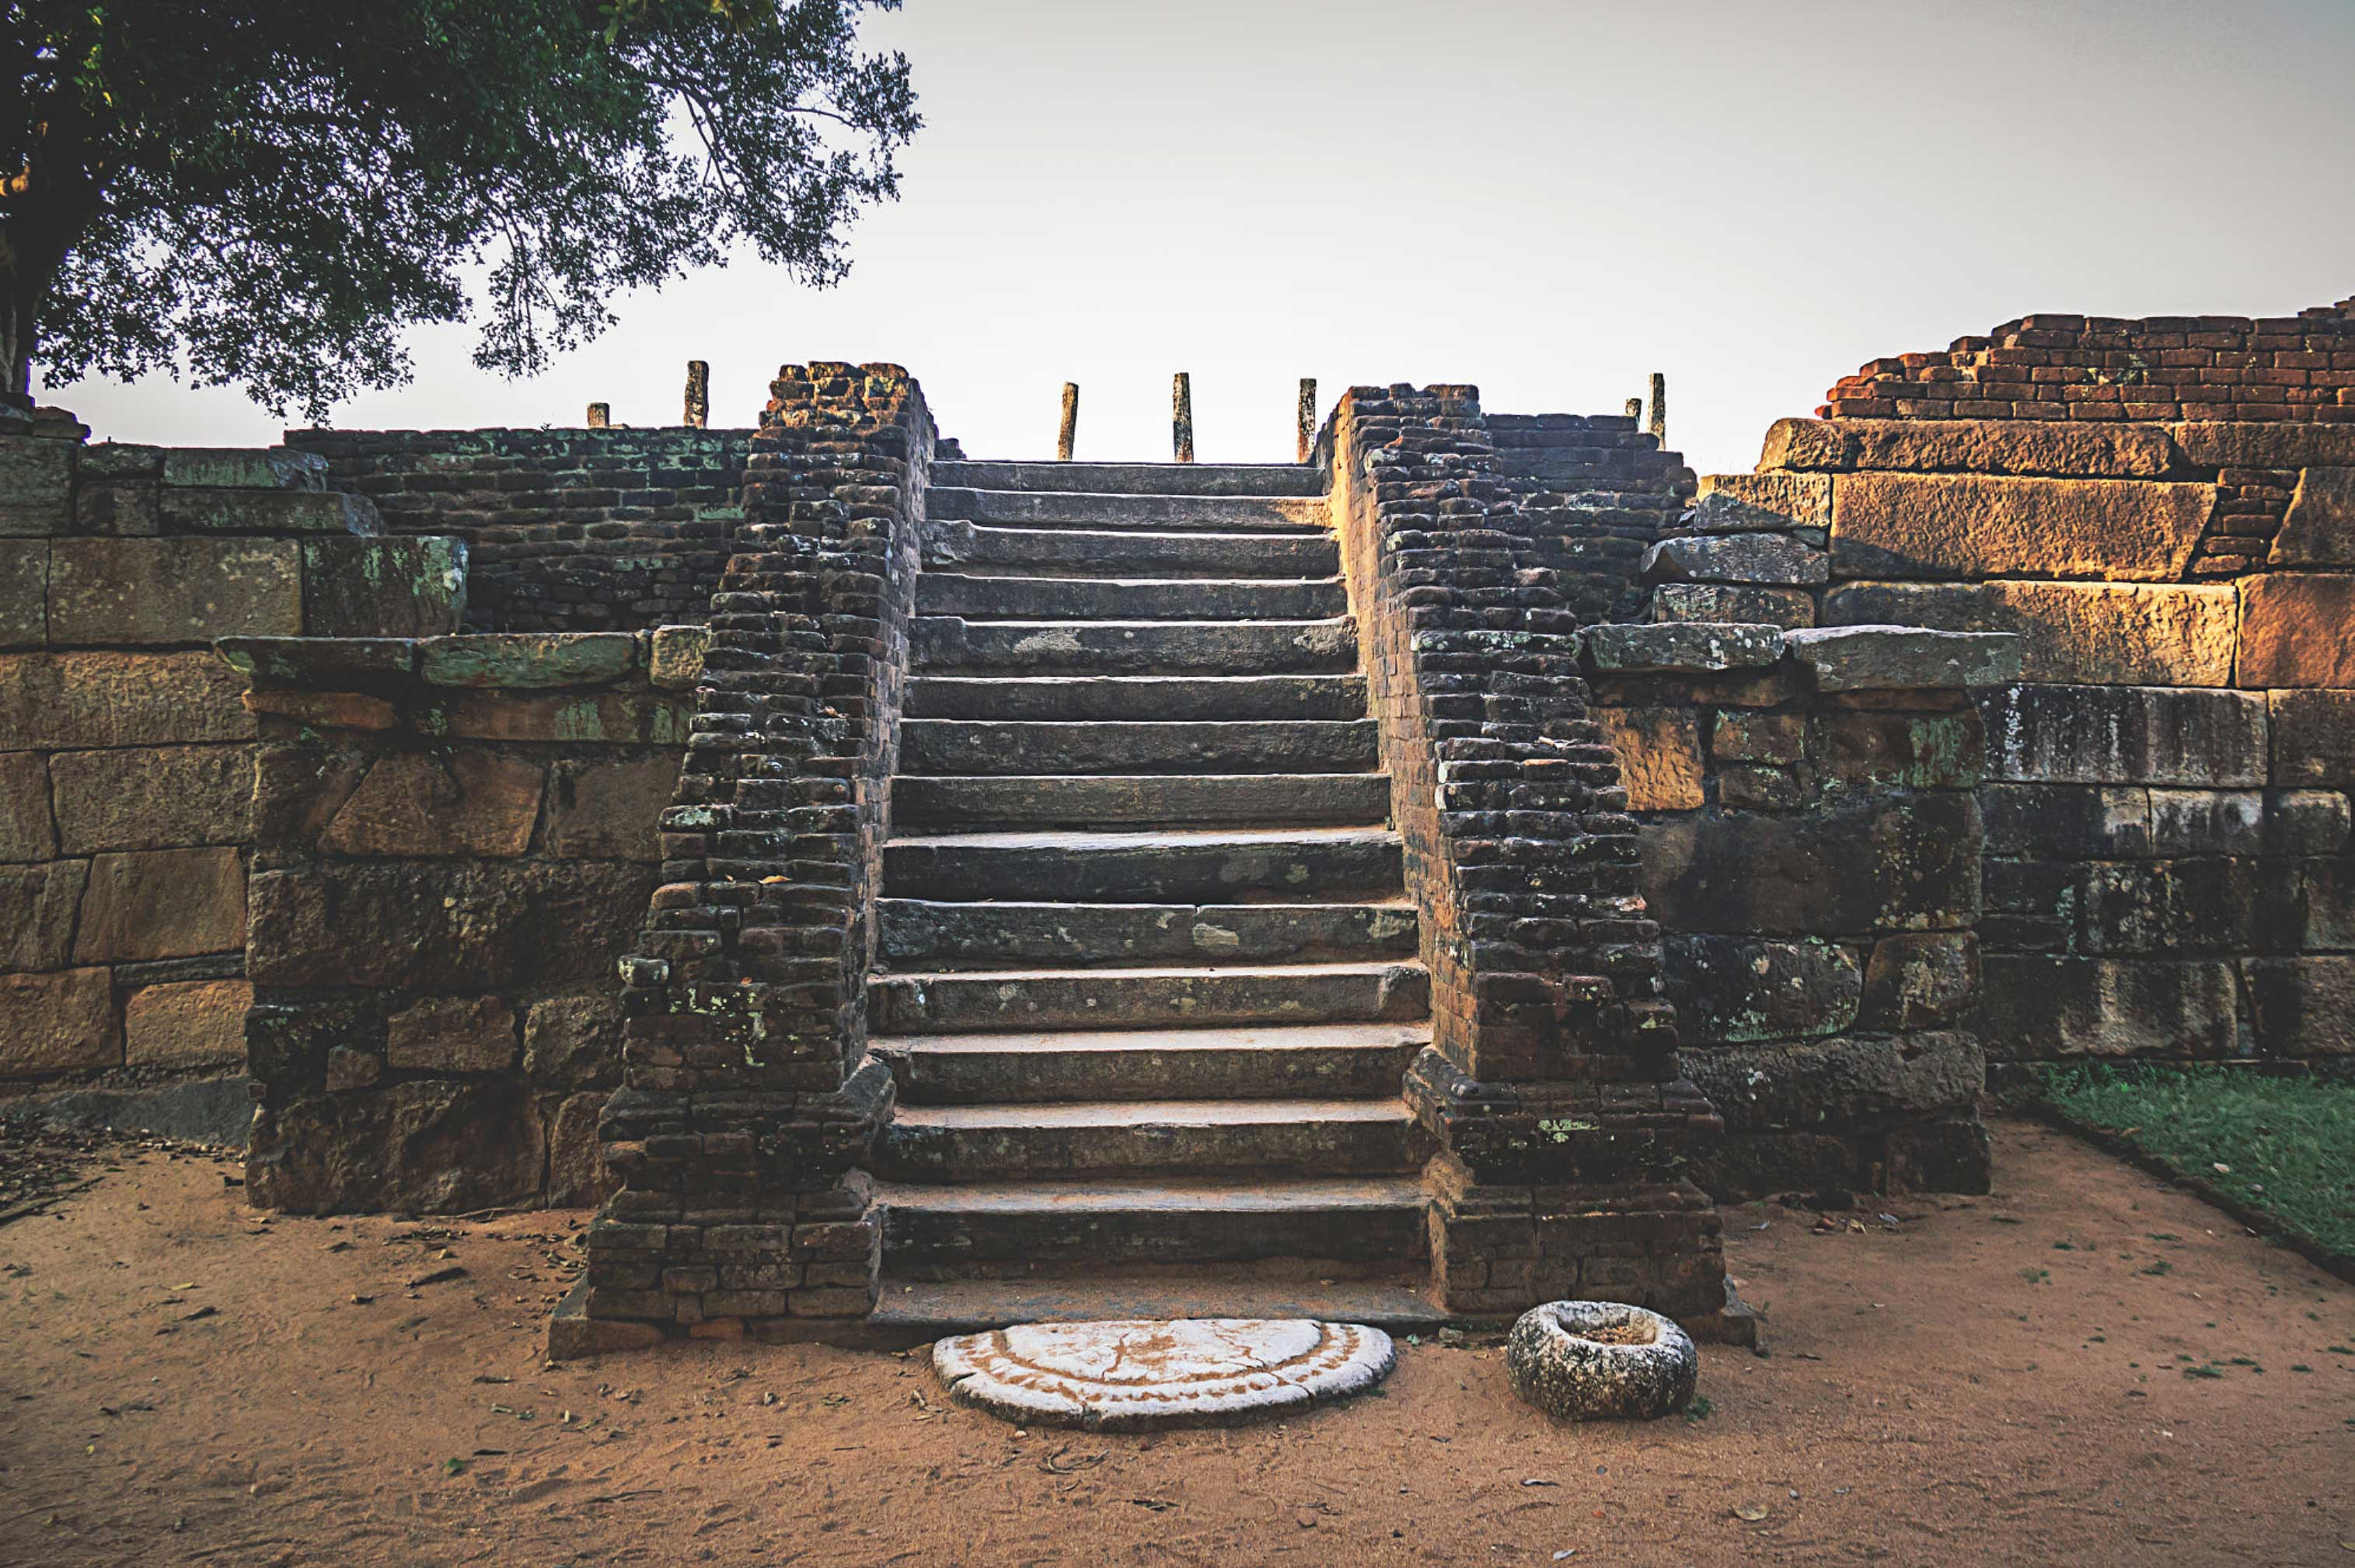 Stairs at Medirigiriya, Sri Lanka #2. Stairs lead up to the ruins of an image house at the 7th century Buddhist complex of Medirigiriya